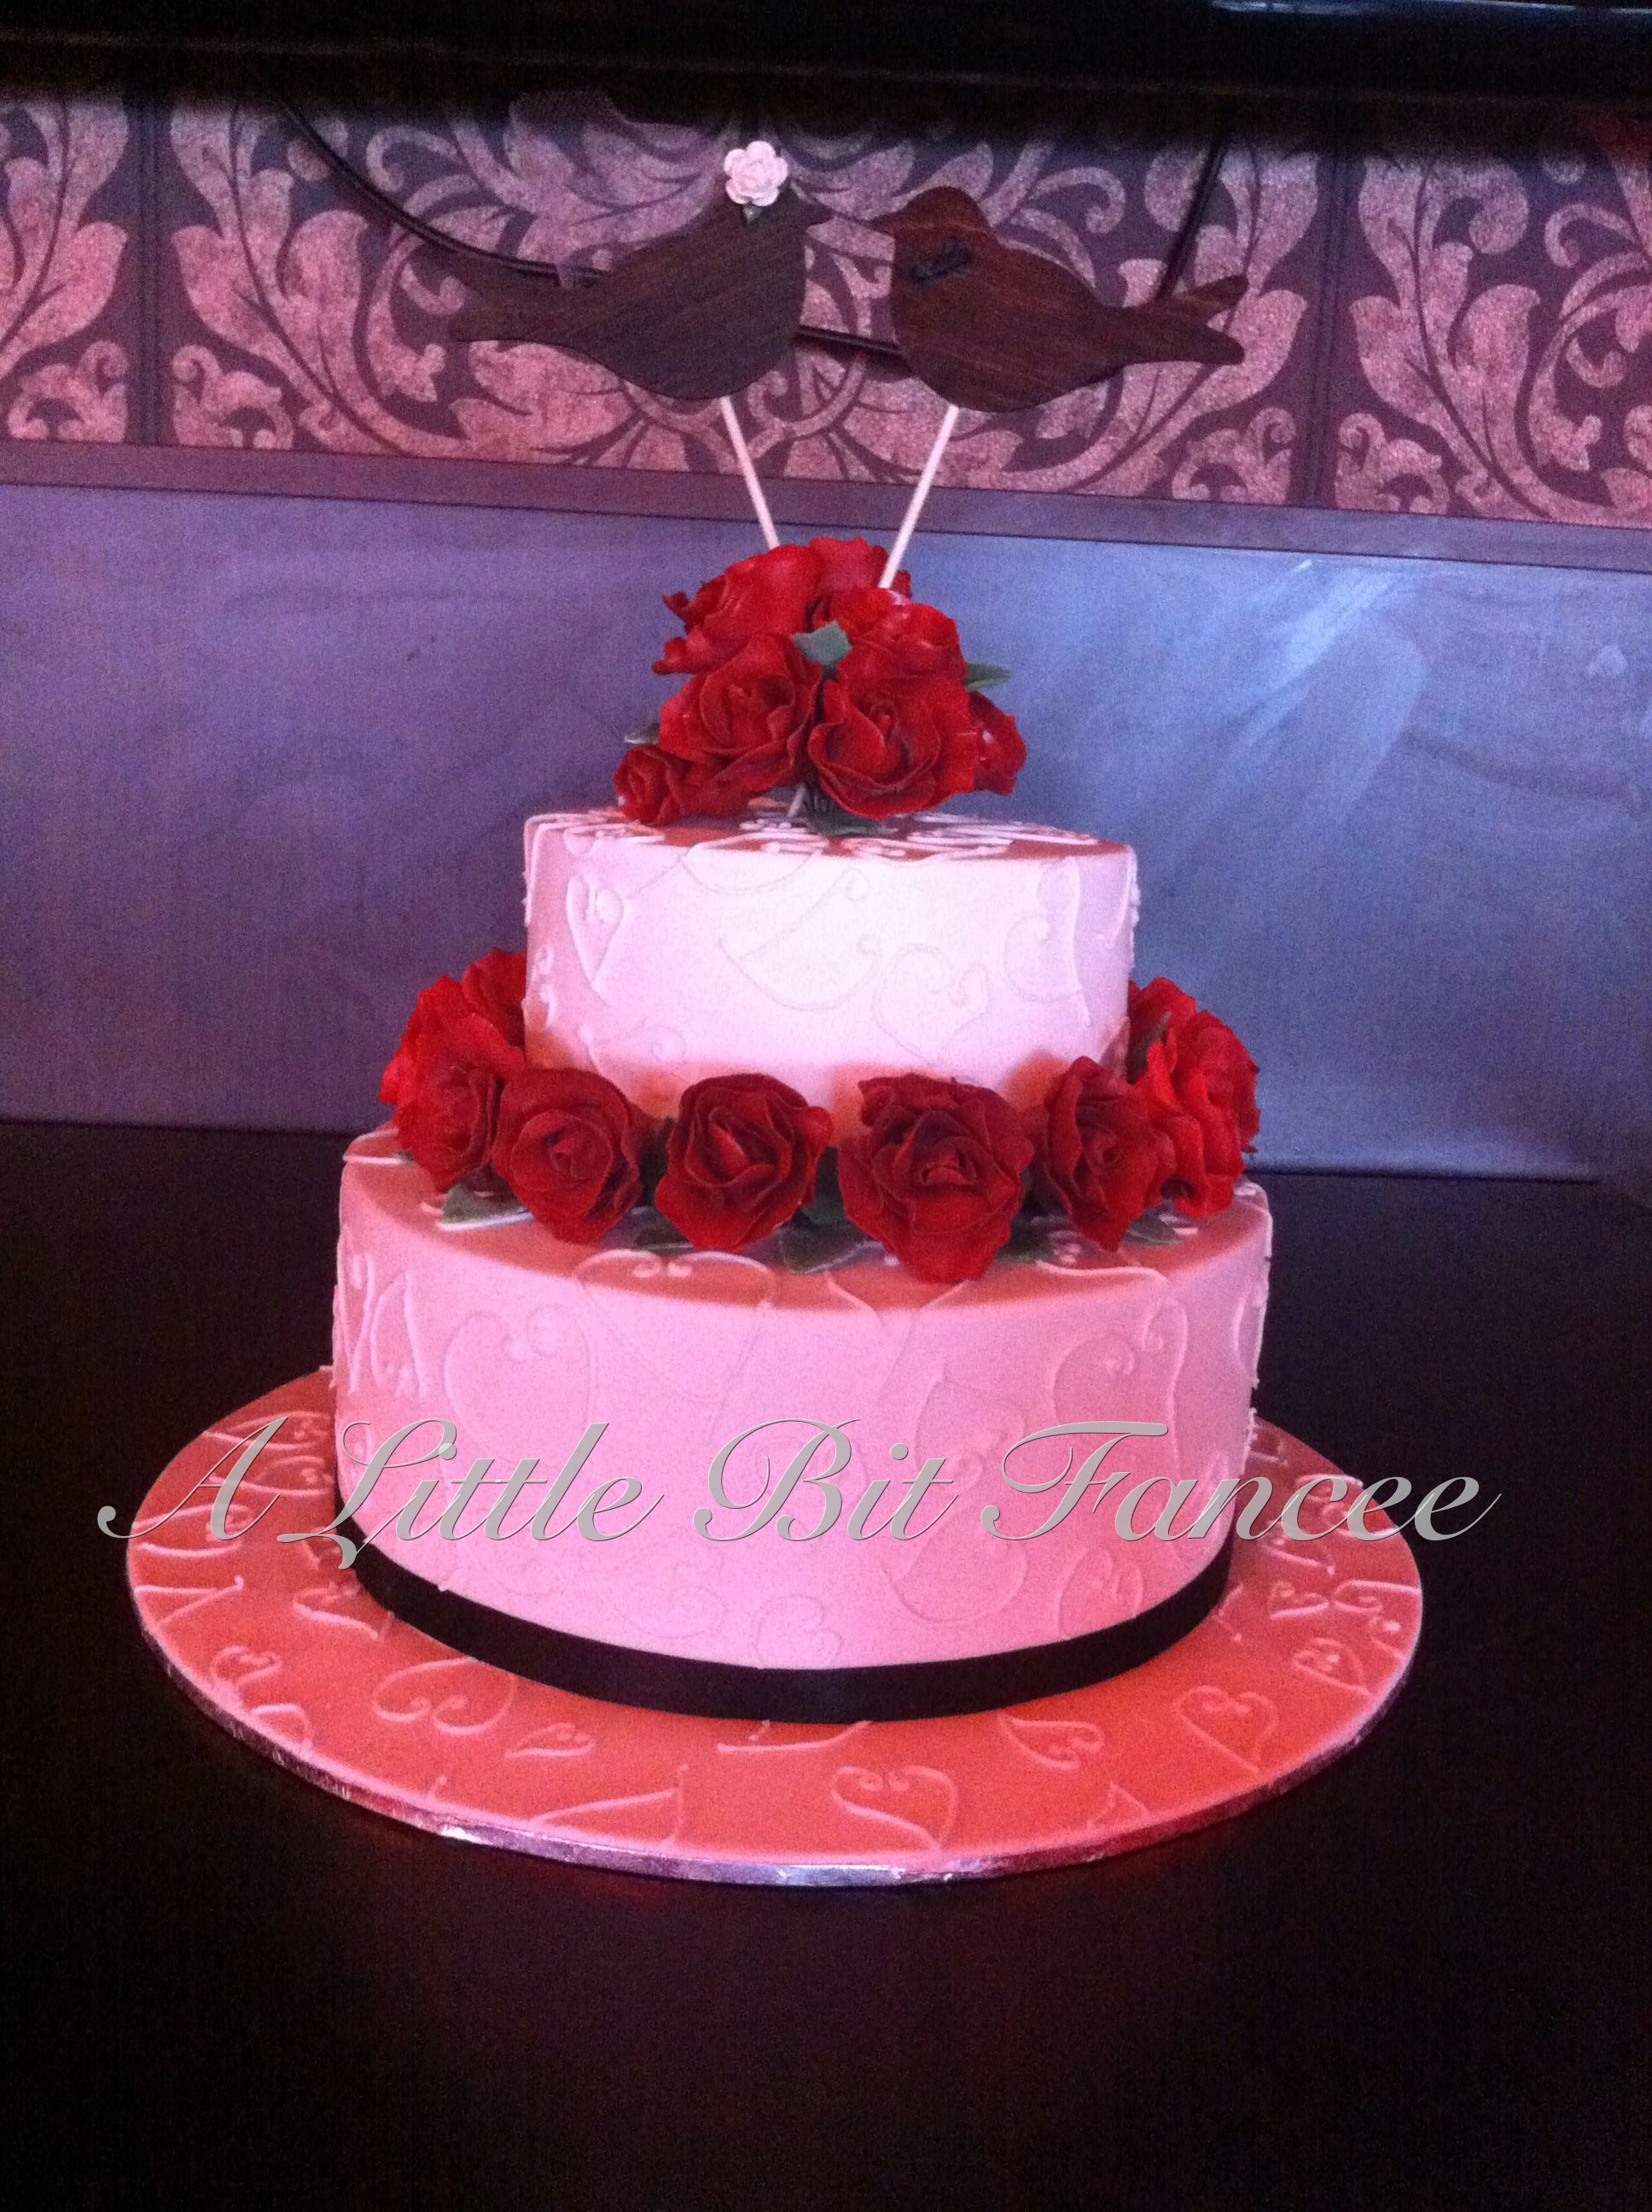 2 tier wedding cake with gum paste roses | Wedding cakes | Pinterest ...